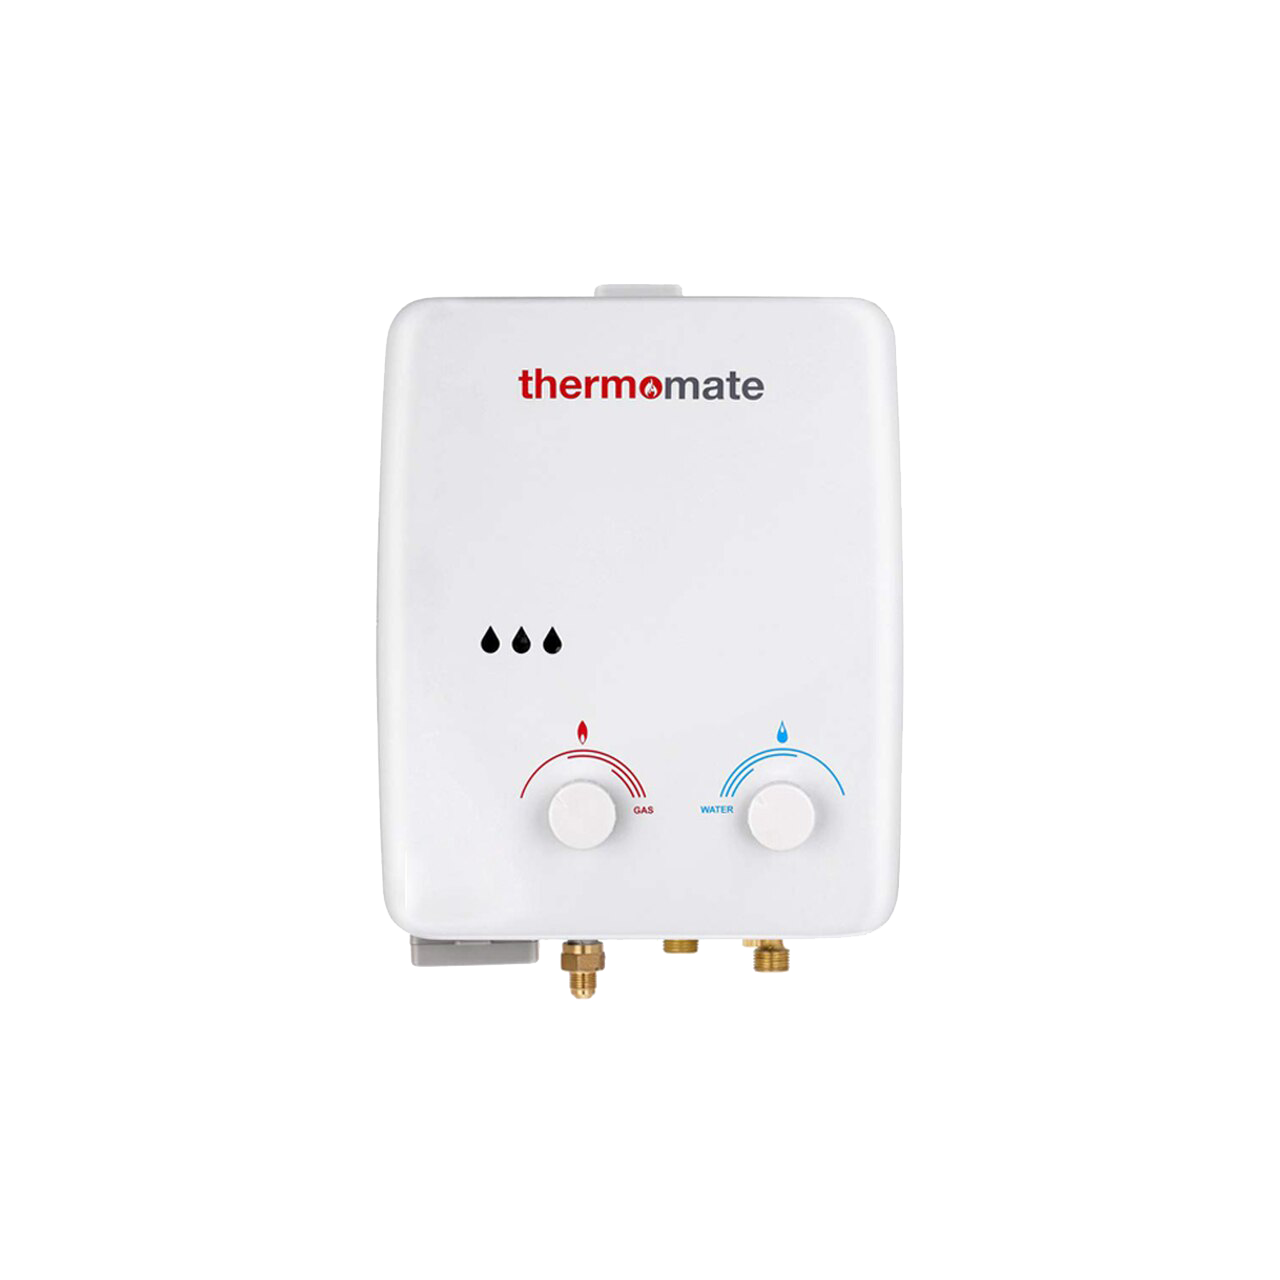 Thermomate Propane Tankless Gas Water Heater 1.32 GPM Portable with Overheating Protection